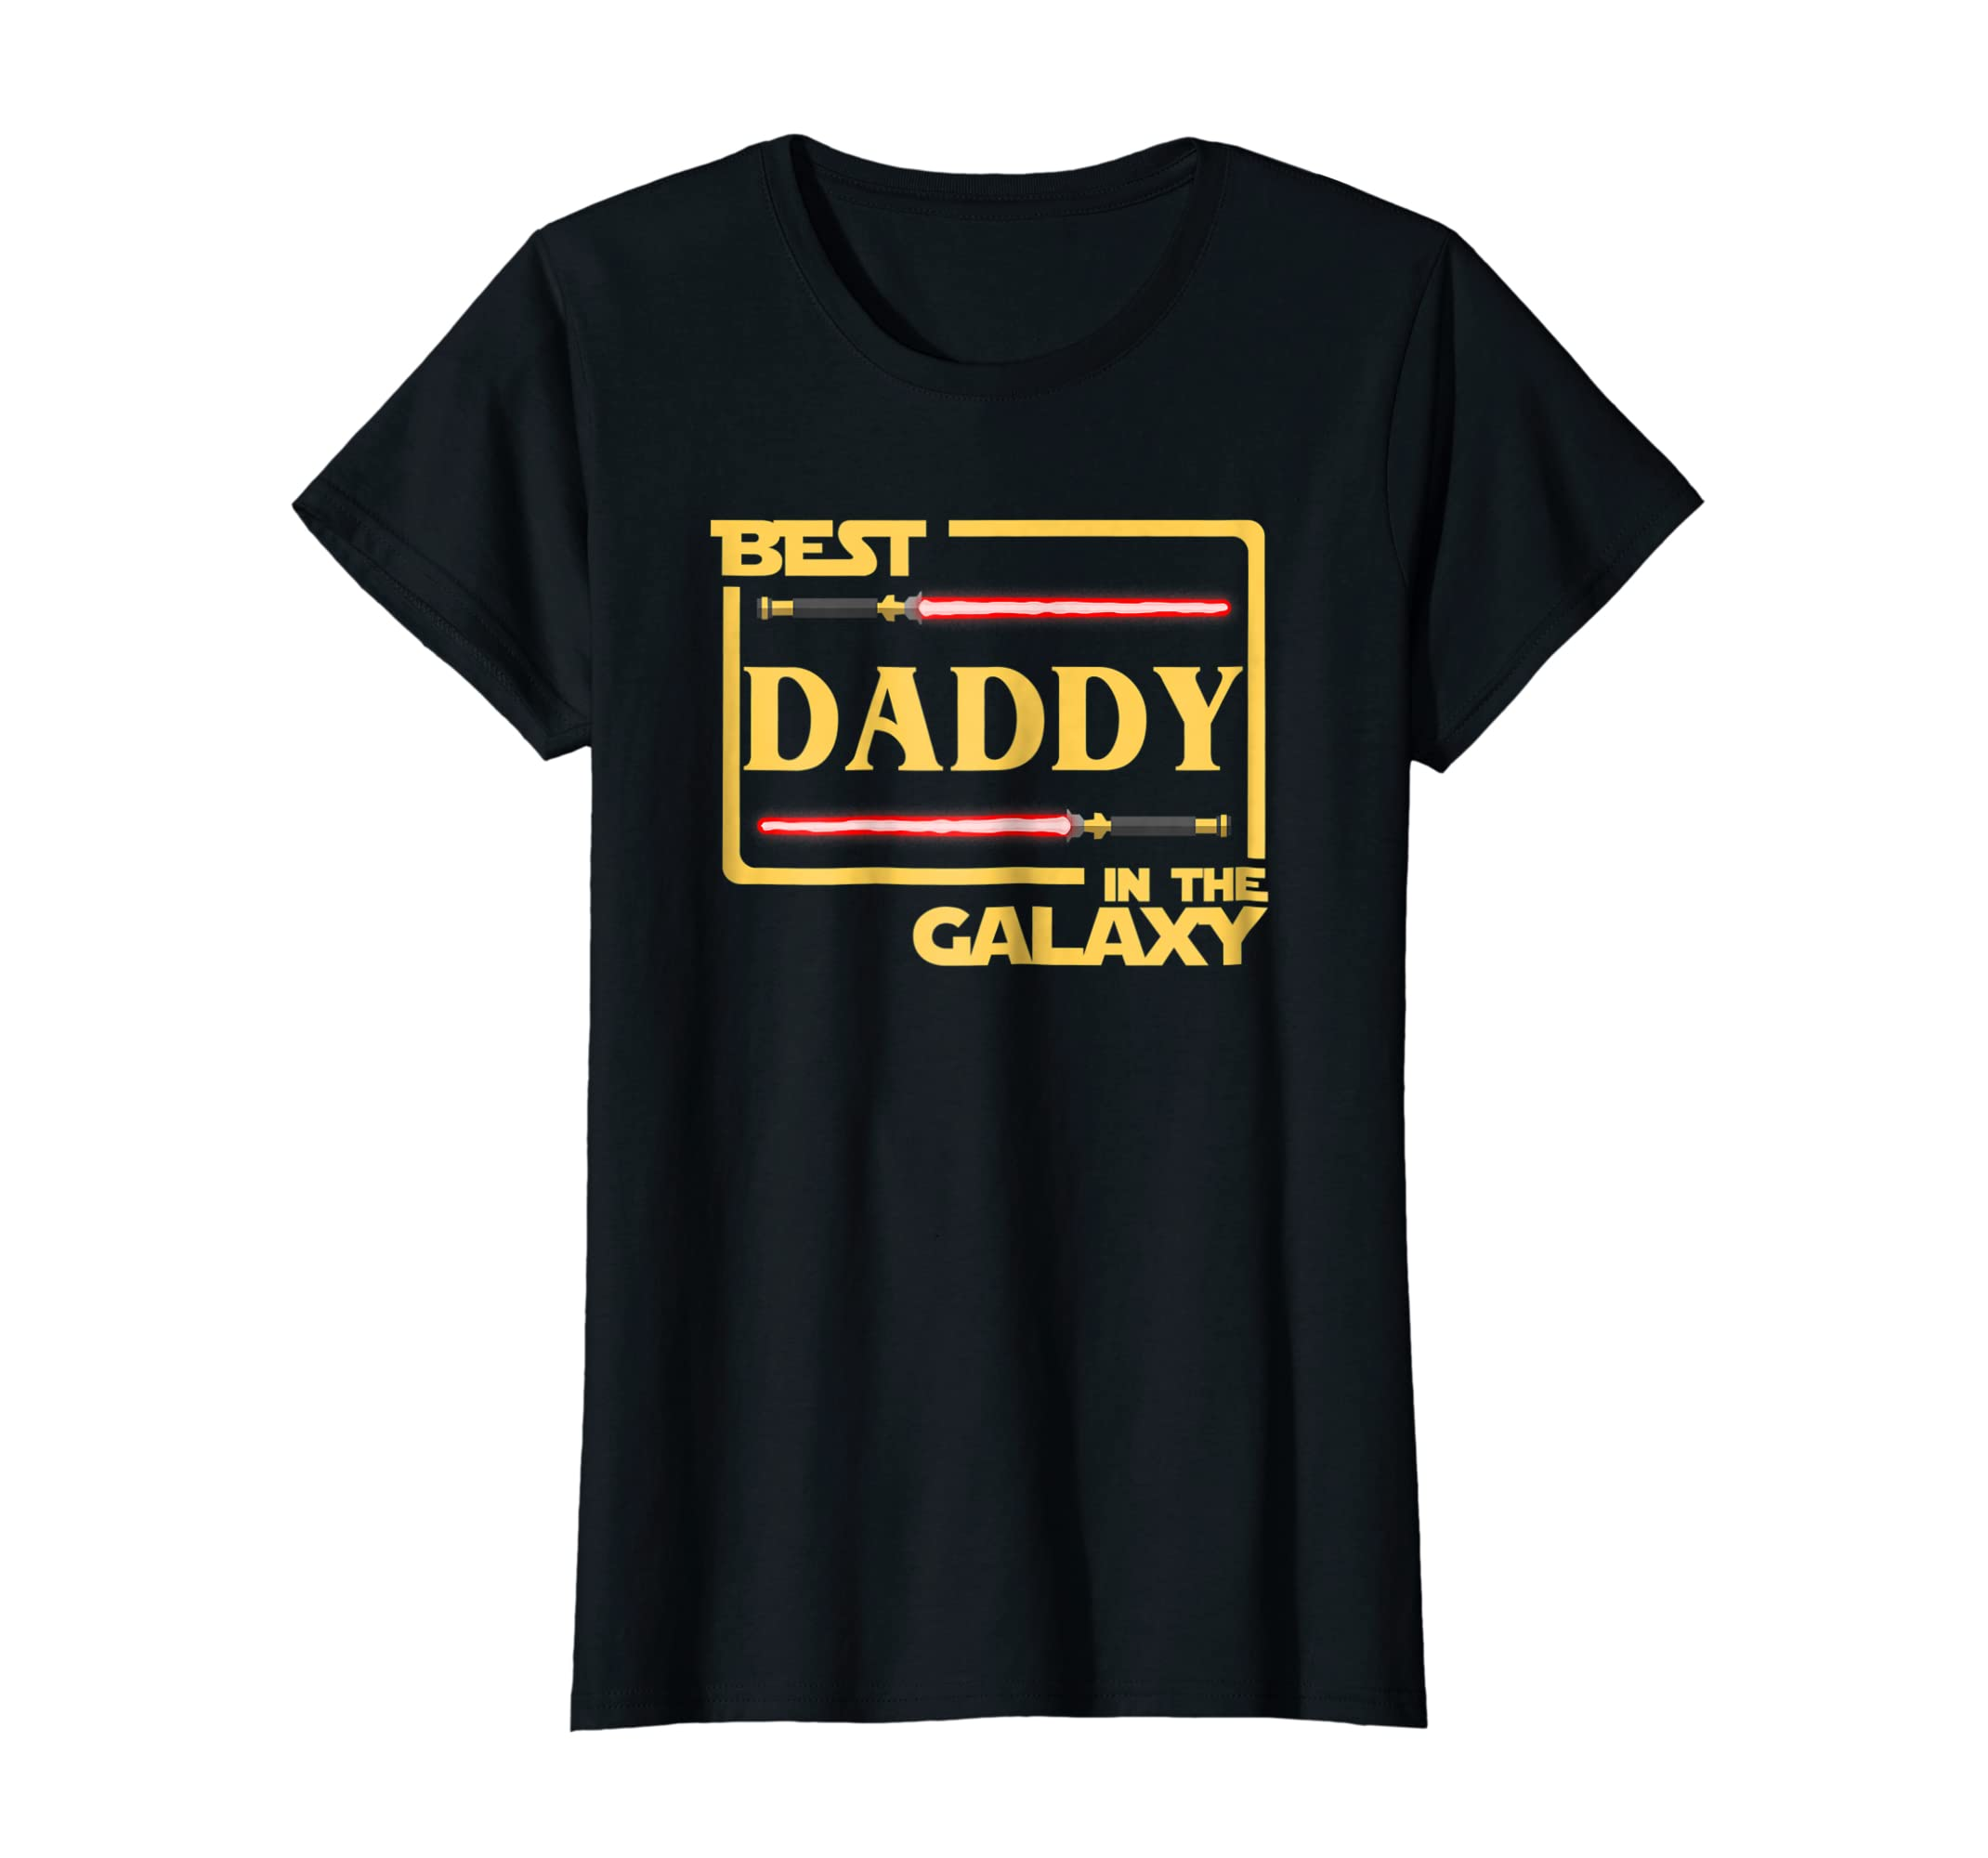 e45290465 Amazon.com: Mens Best Daddy In The Galaxy Father's Day T-Shirt: Clothing